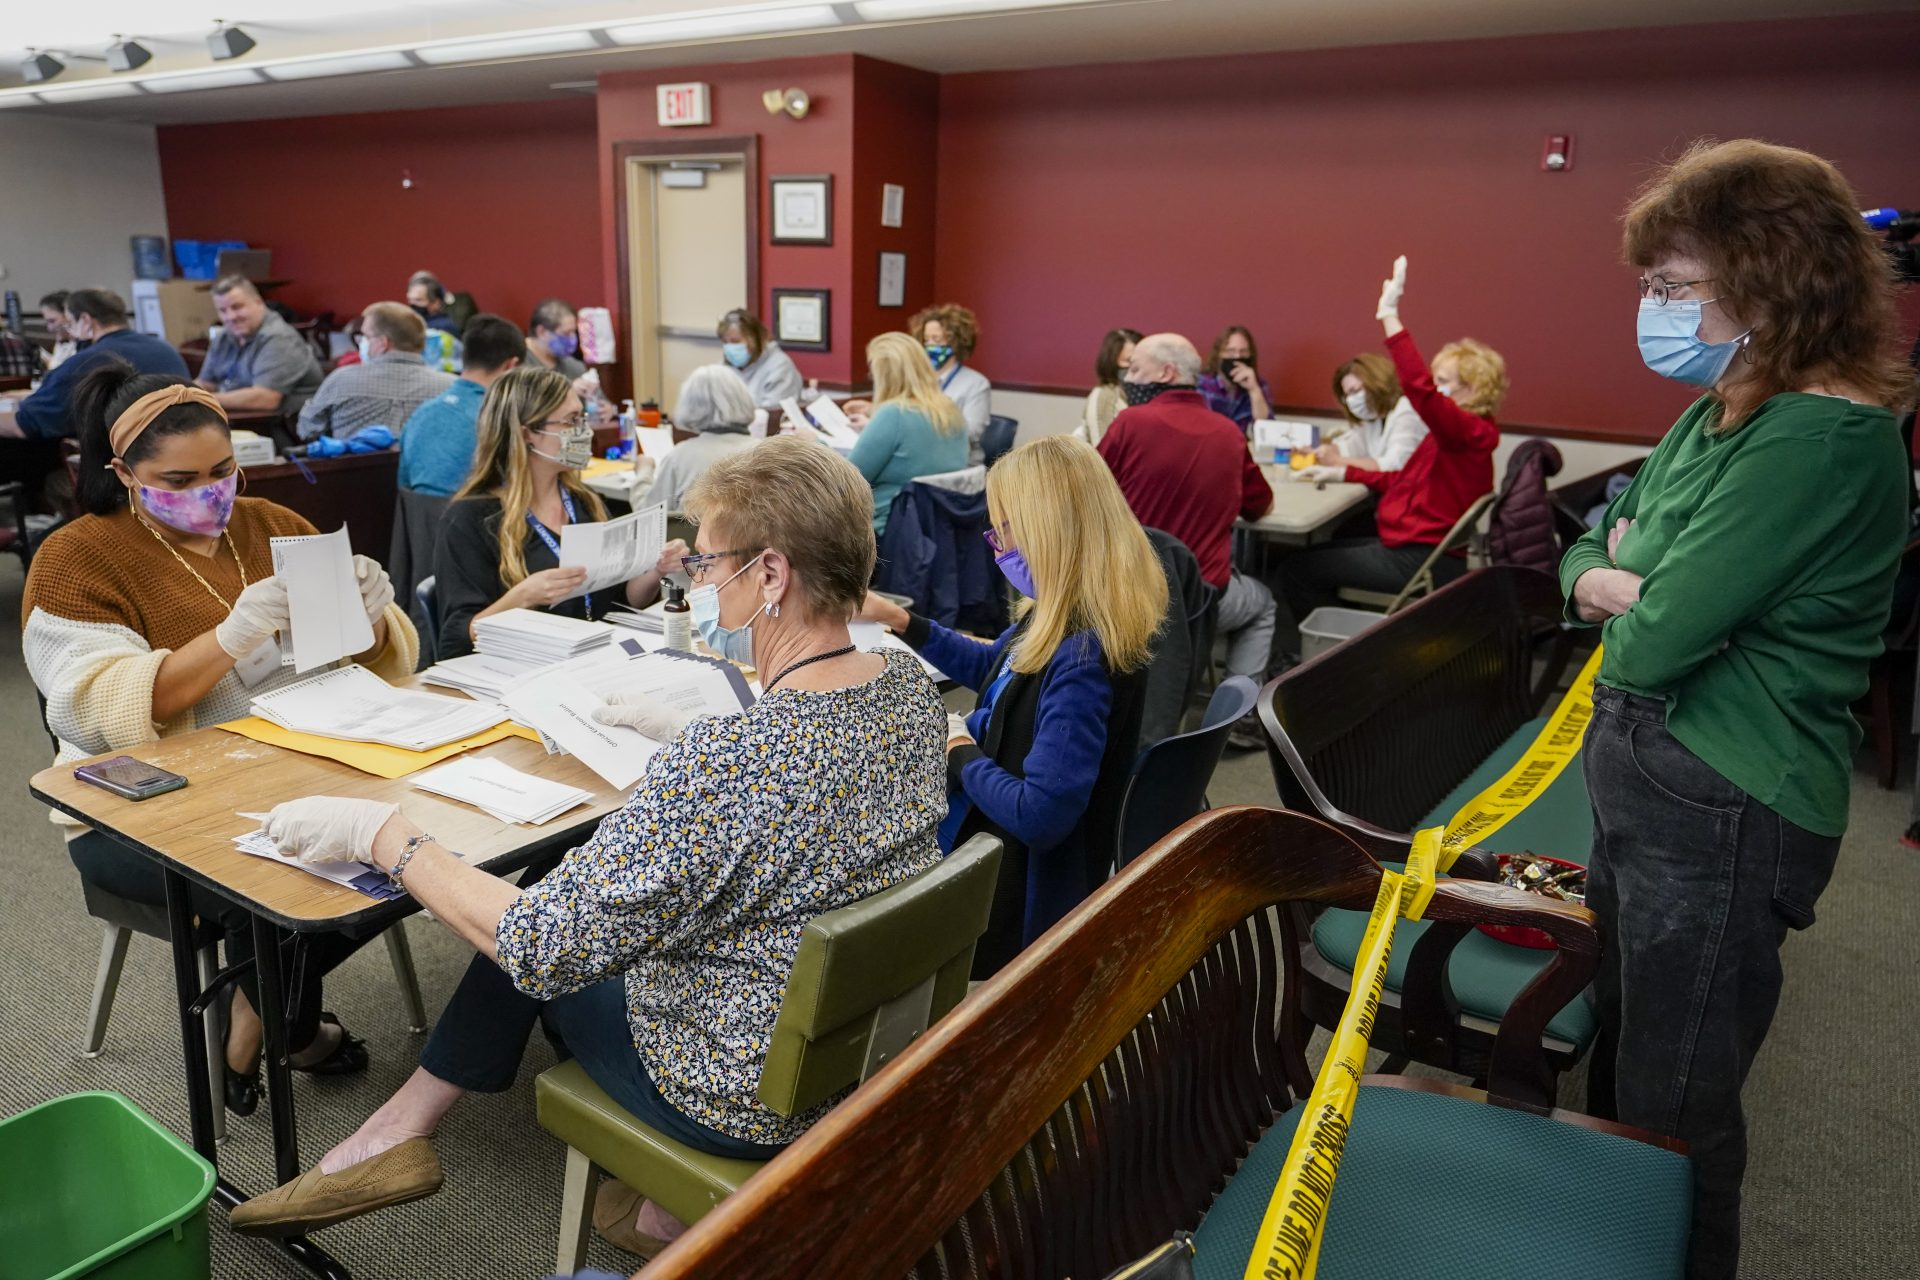 Lynn Muchler-Stash, right, an observer with the Democratic Party of Pennsylvania watches as municipal workers sort and count Luzerne County ballots, Wednesday, Nov. 4, 2020, in Wilkes-Barre, Pa.